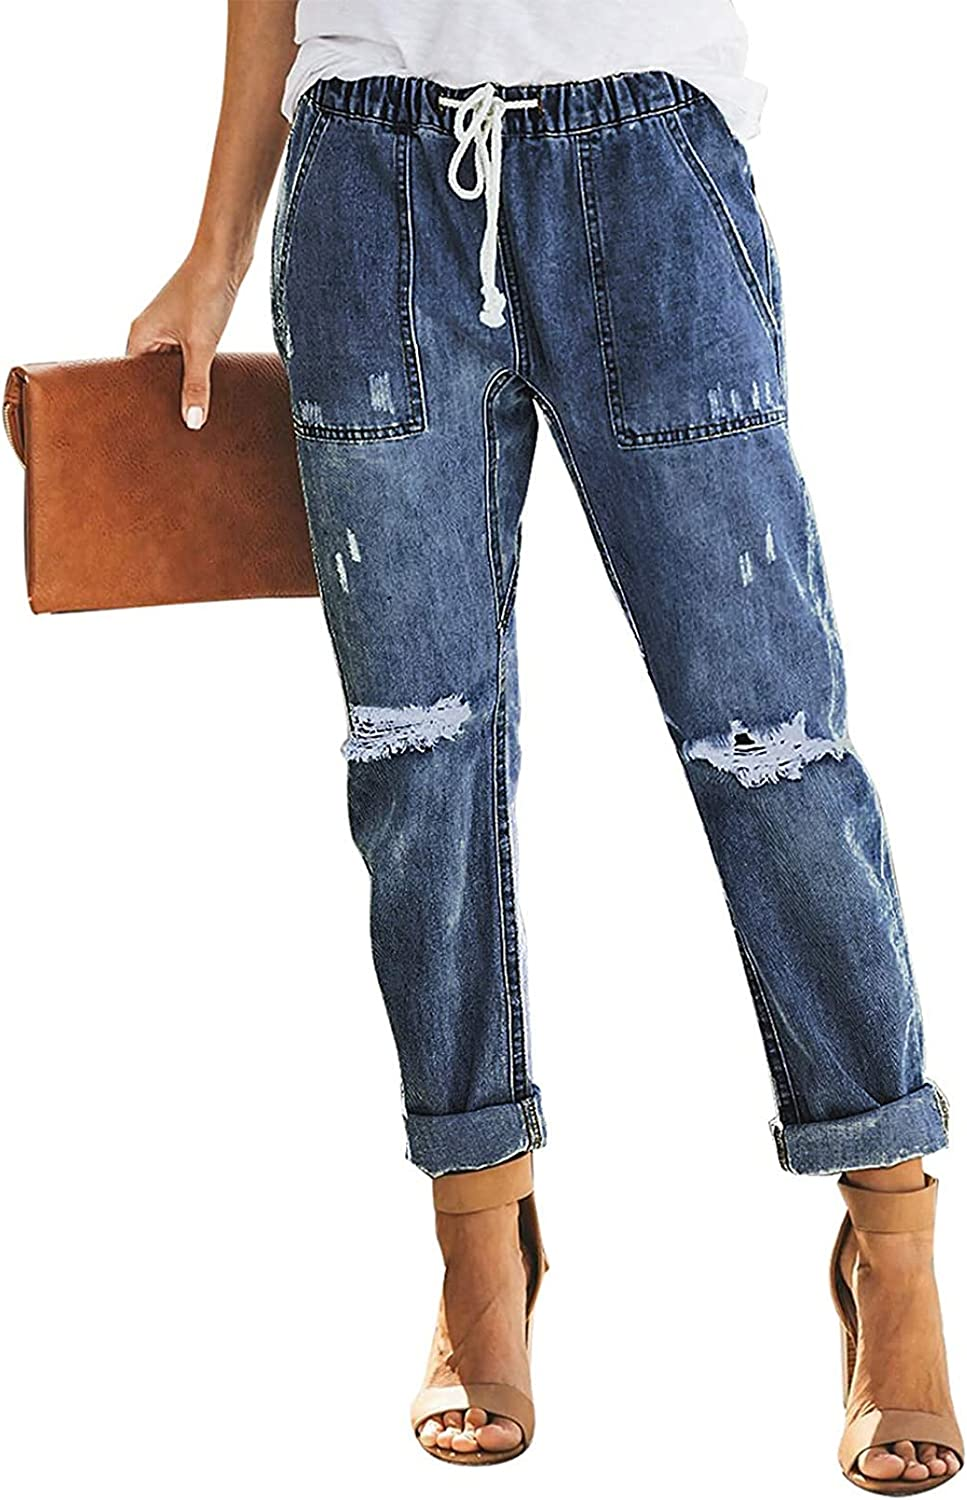 Dokotoo Women's Patchwork Destroyed Sale Special Price Raw Ripped Bo Hem Mail order Jeans Hole